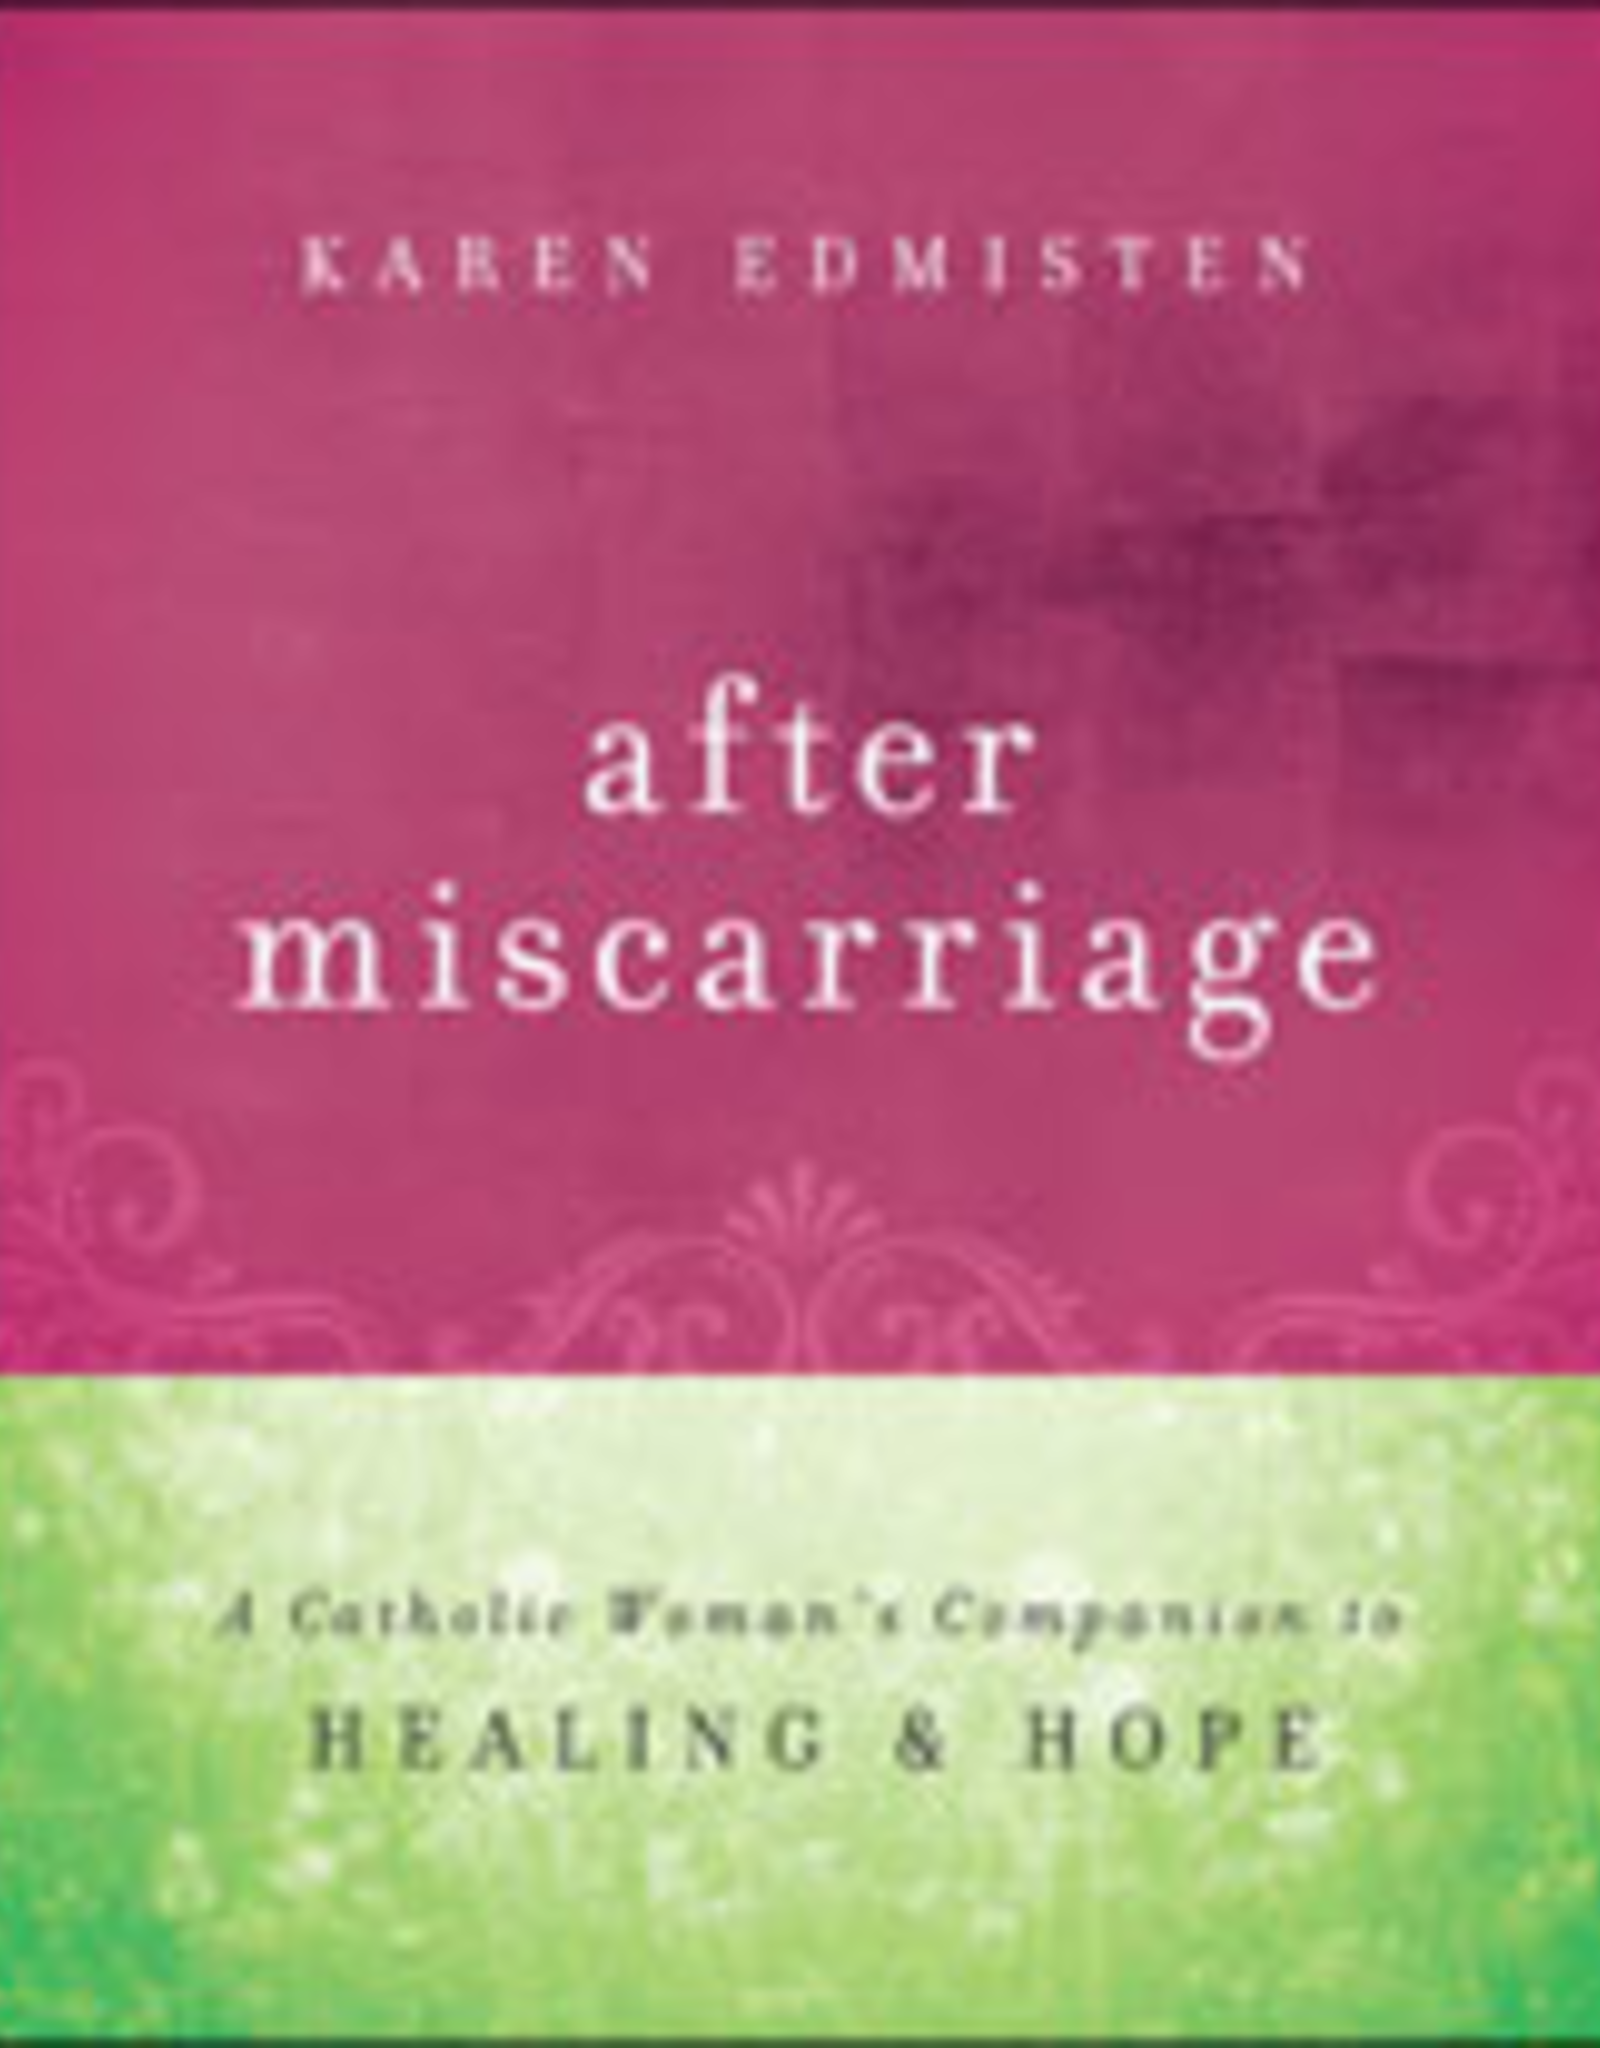 Franciscan Media After Miscarriage:  A Catholic Woman's Companion to Healing and Hope, by Karen Edmisten (paperback)